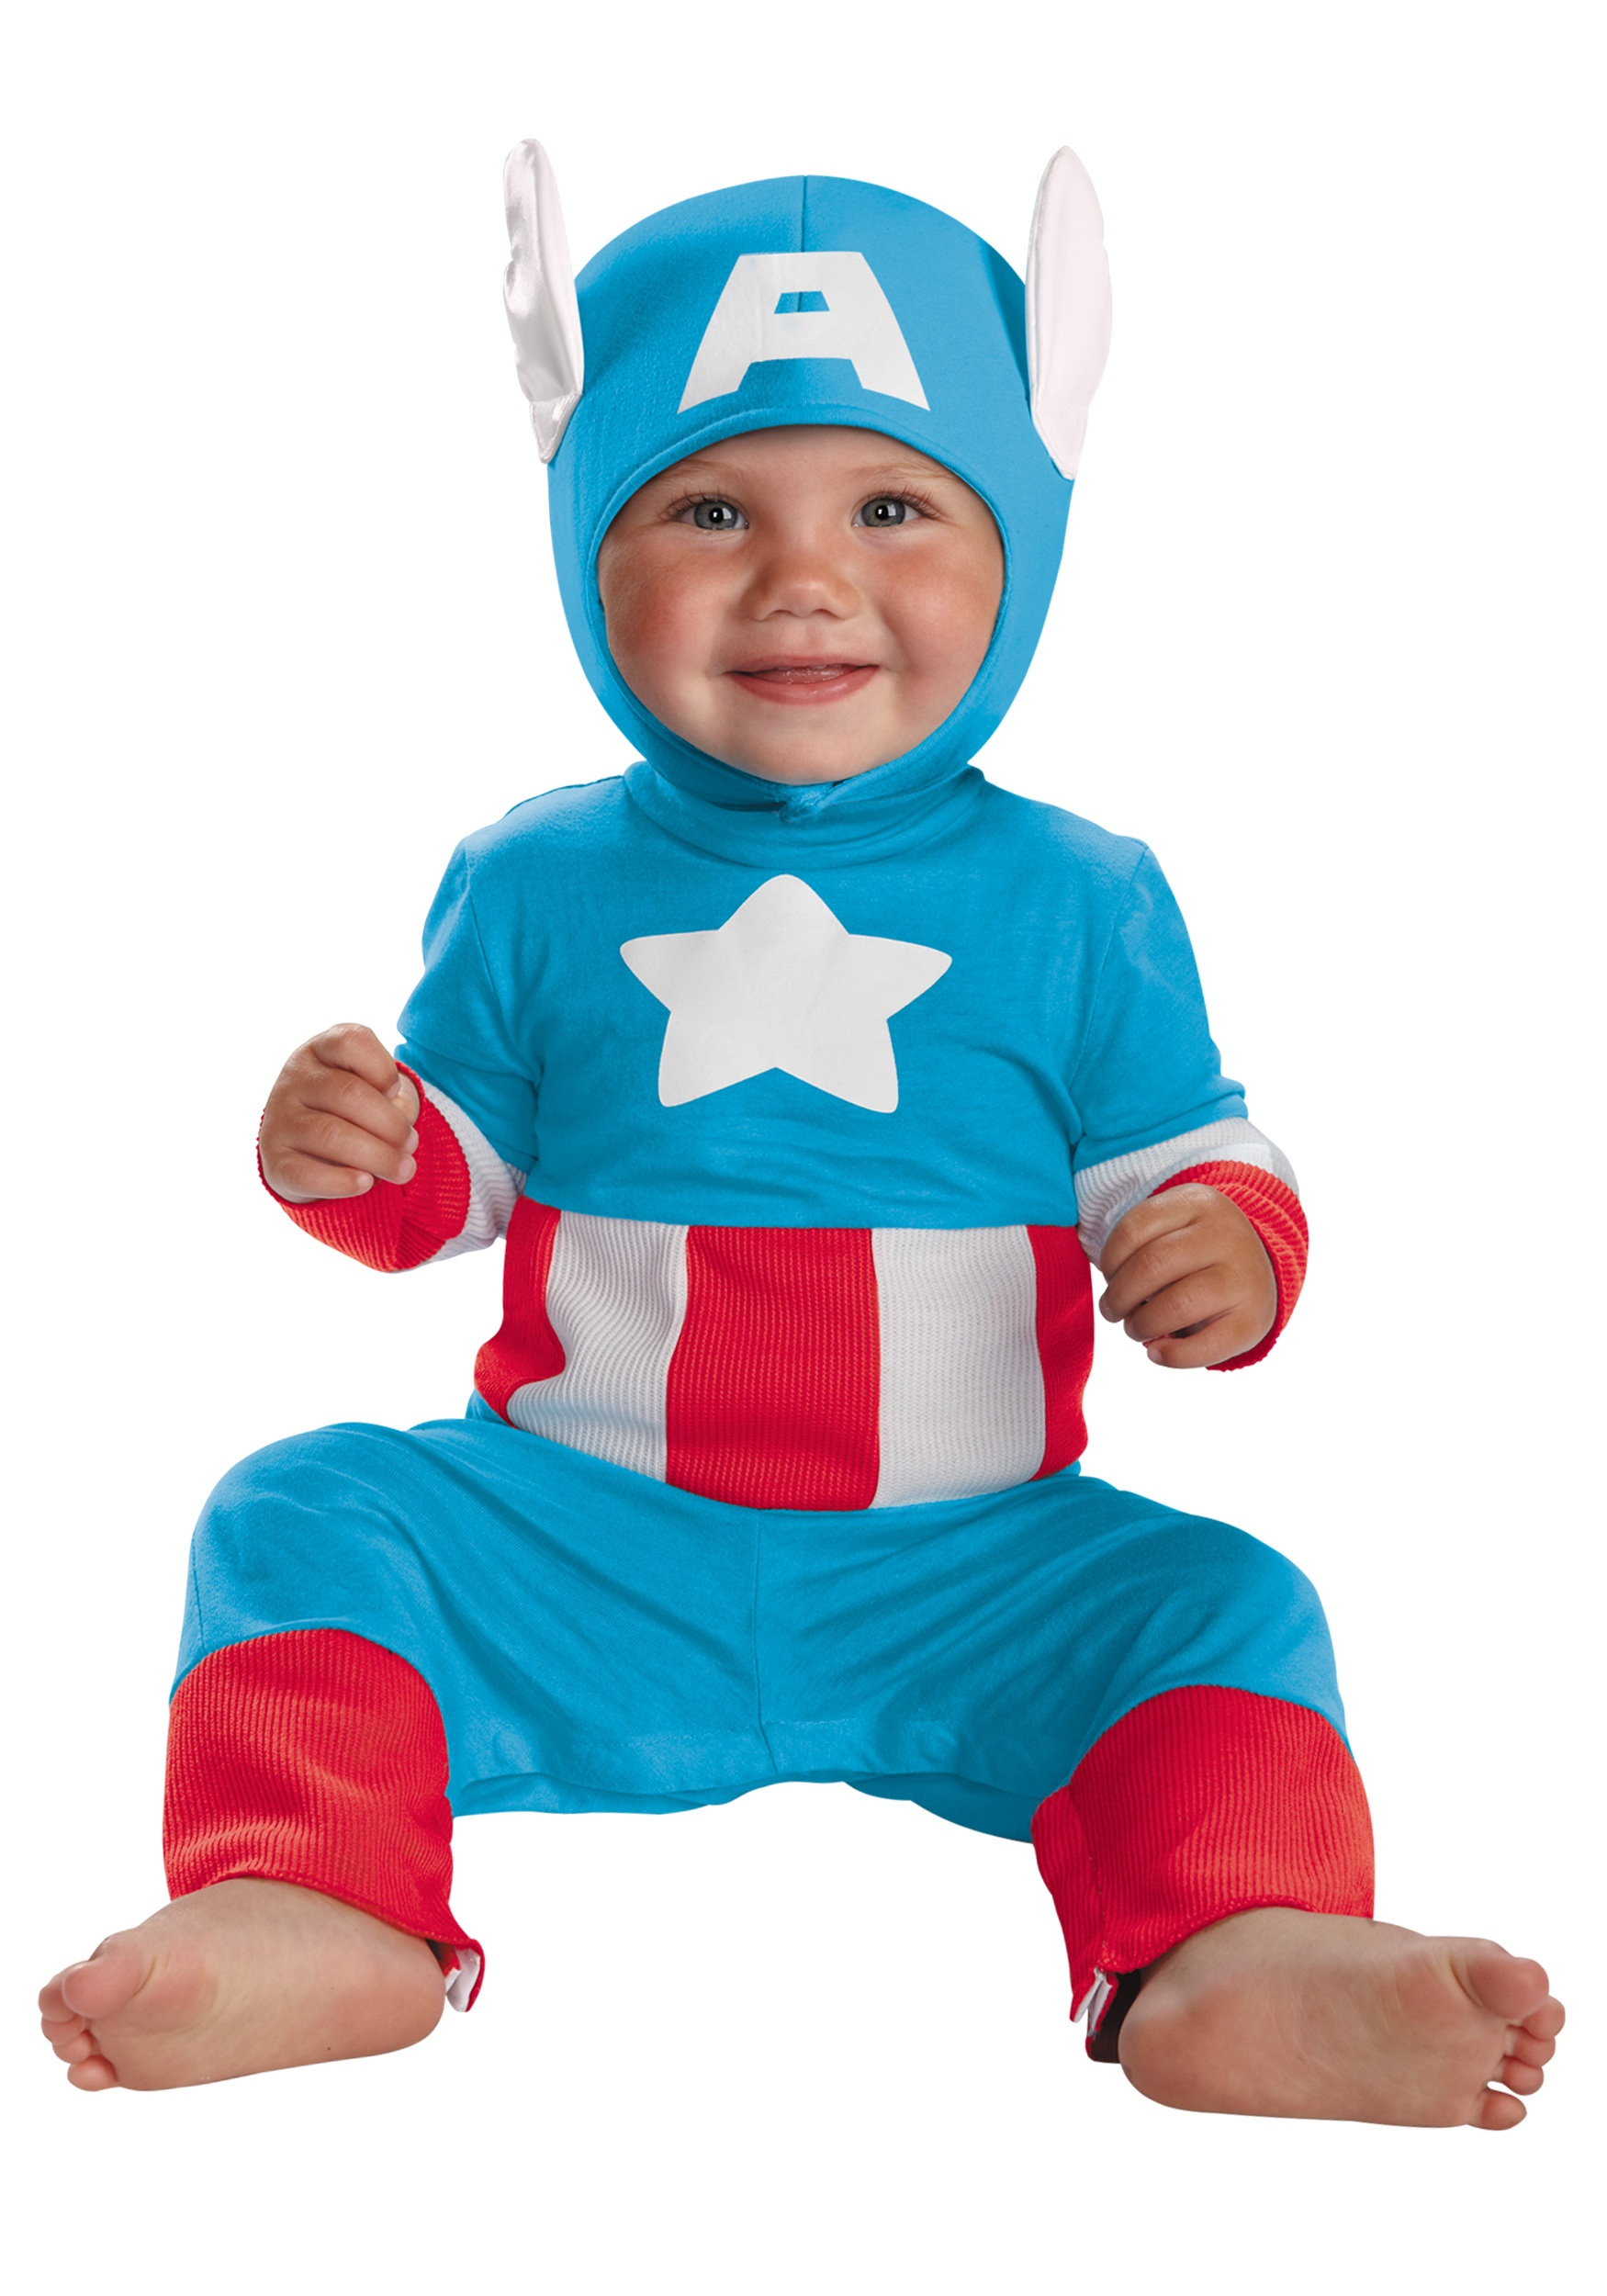 Shop All Baby. Shop all Shop All Baby Featured Deals Restock Shop Parent's Choice Premium Brands Baby Box. Diapering & Potty. Infant Costumes. Party & Occasions. Halloween. All Halloween Costumes. All Children's Halloween Costumes. Baby & Toddler Halloween Costumes. Infant Costumes. Showing 40 of results that match your query.